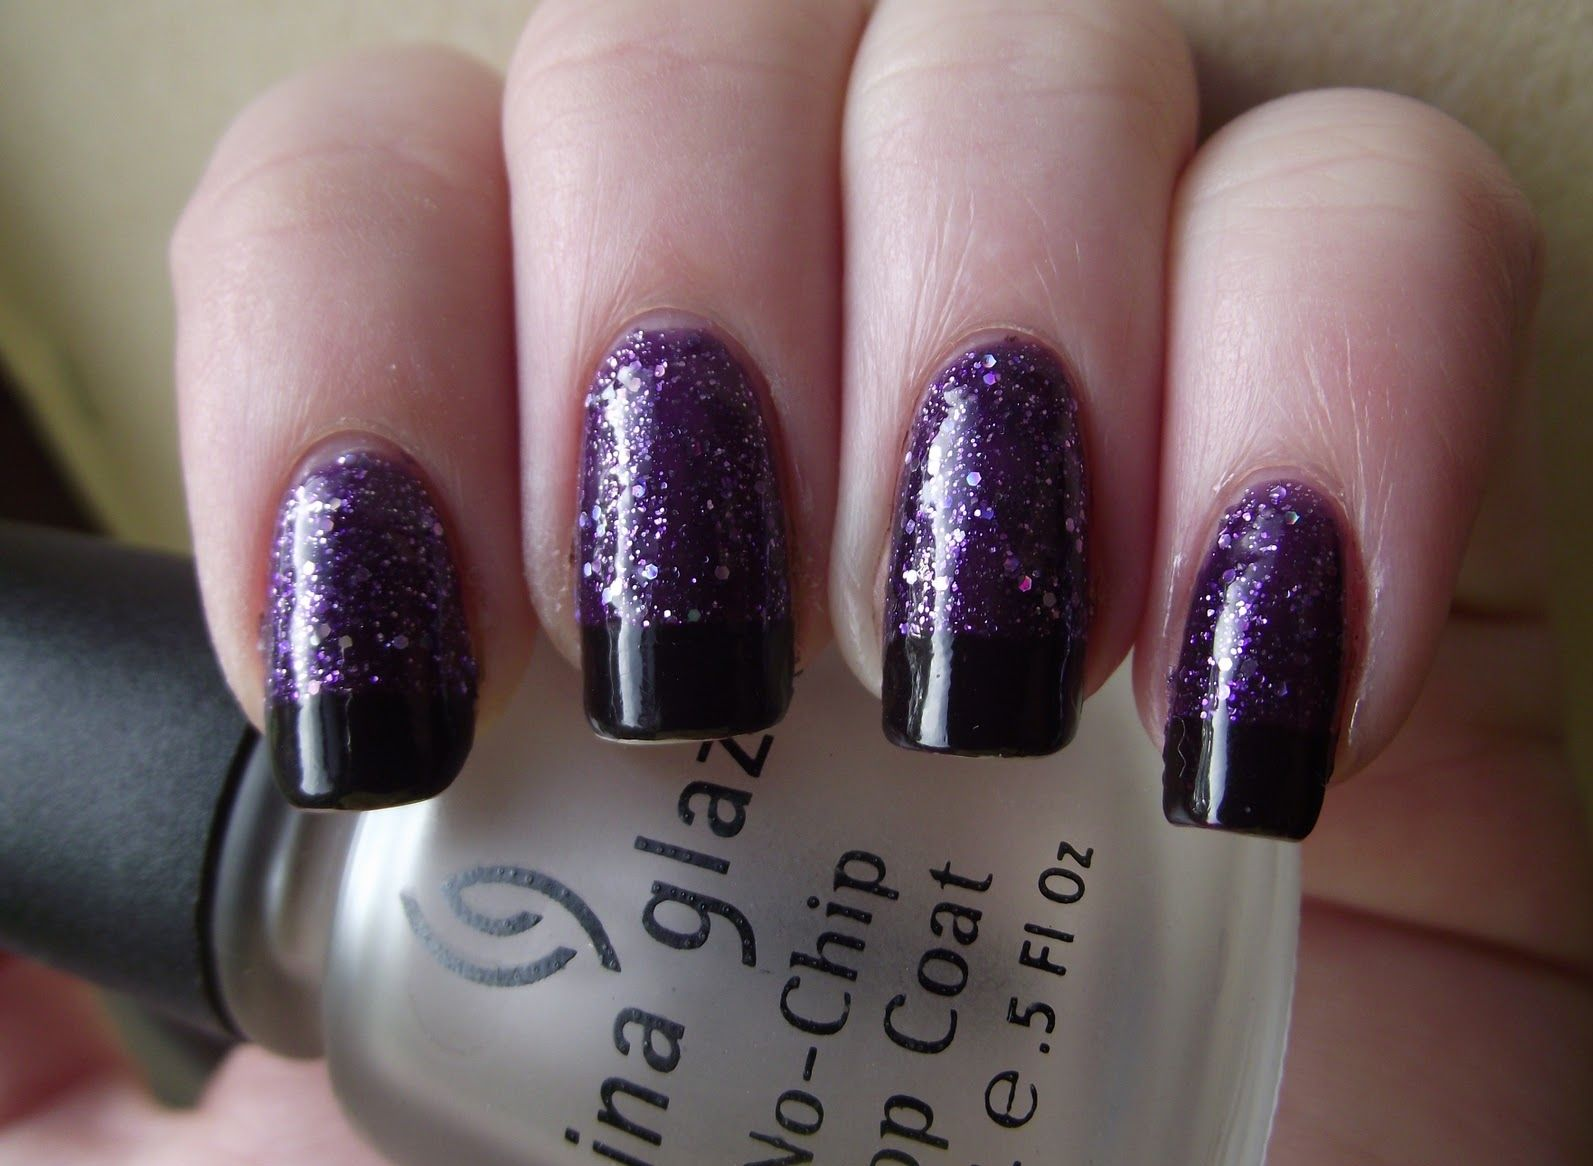 Protect your nails from damage with China Glaze No-Chip Top-Coat ...